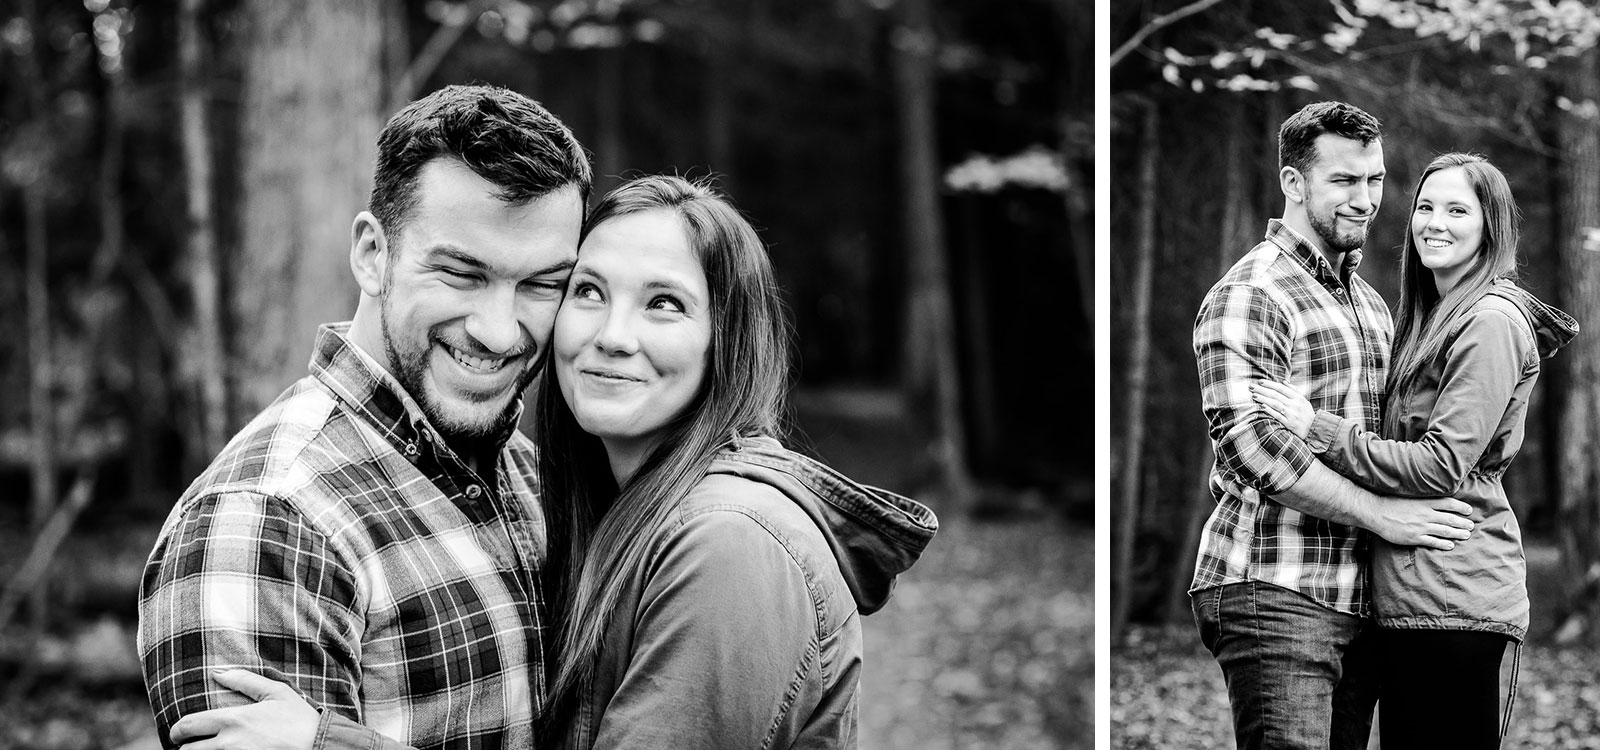 Eric_and_Christy_Photography_Blog_Stephanie_Nick_Engagement-29-30